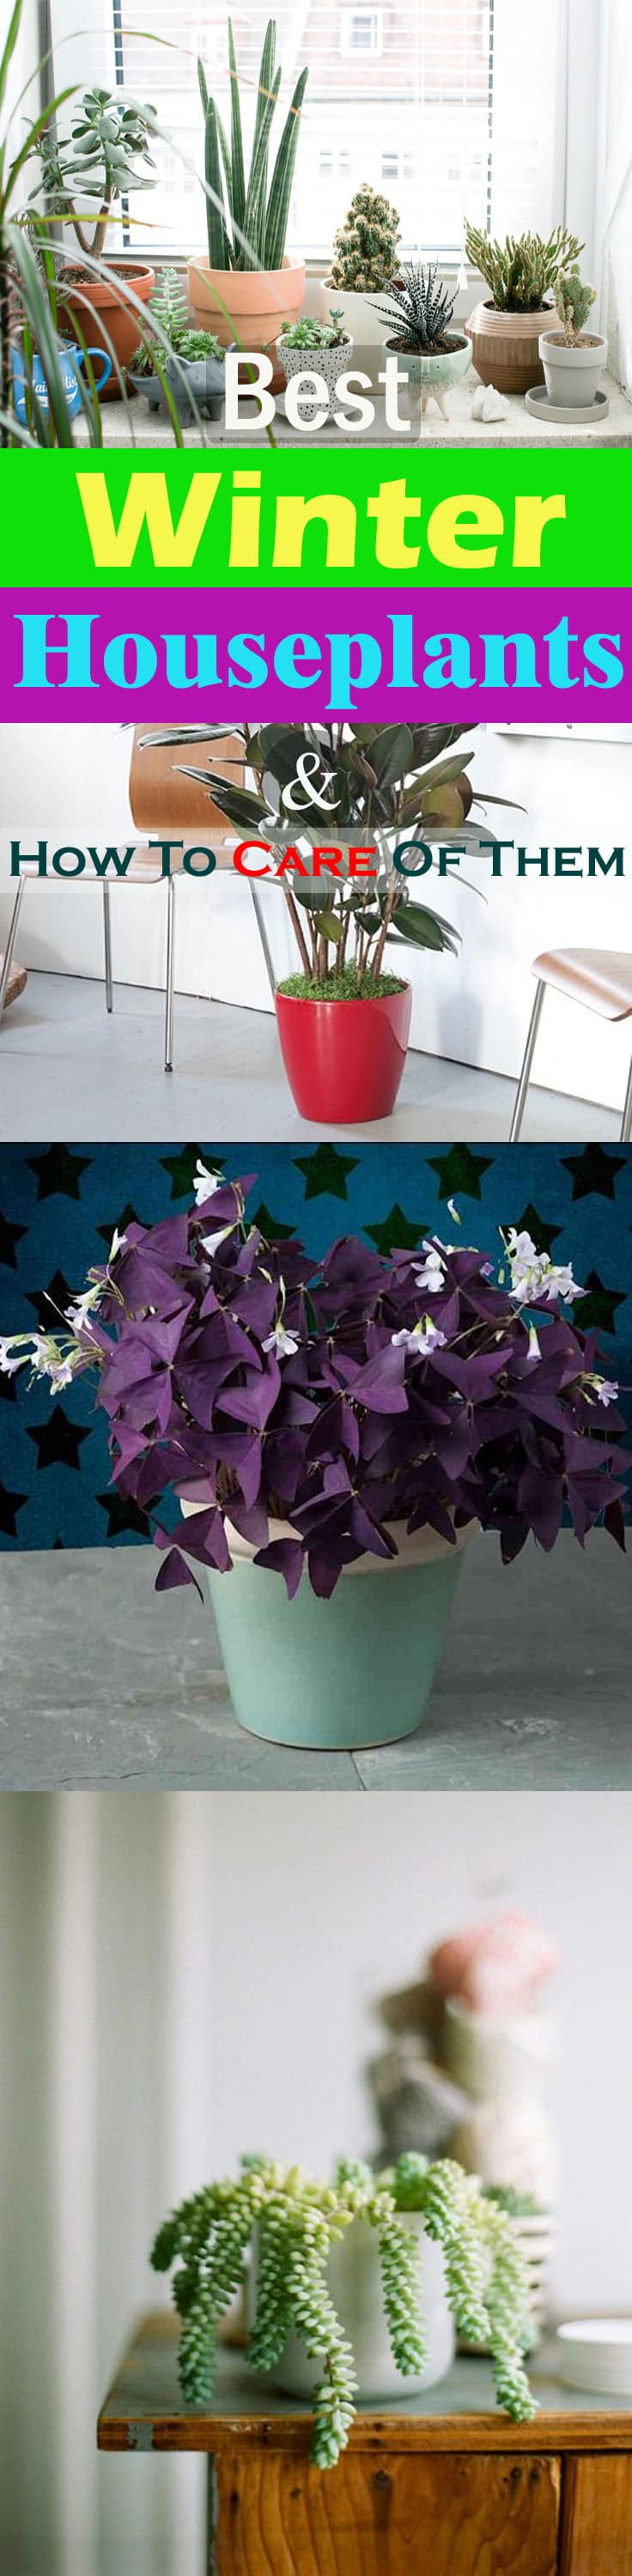 Best winter houseplants how to take care of indoor plants in learn how to take care of indoor plants in winter in this article also workwithnaturefo